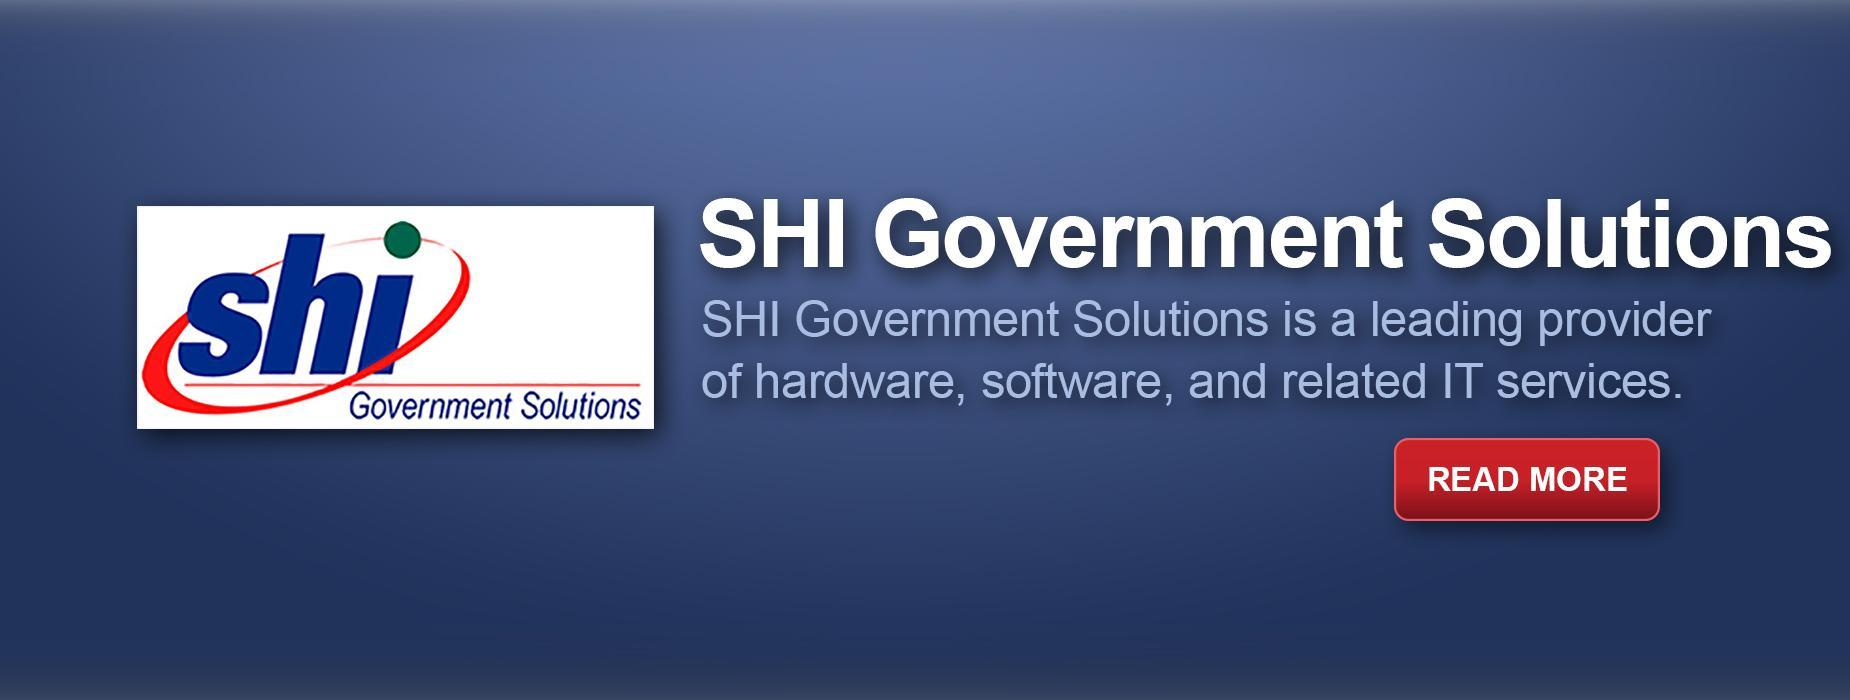 SHI Government Solutions, Read more